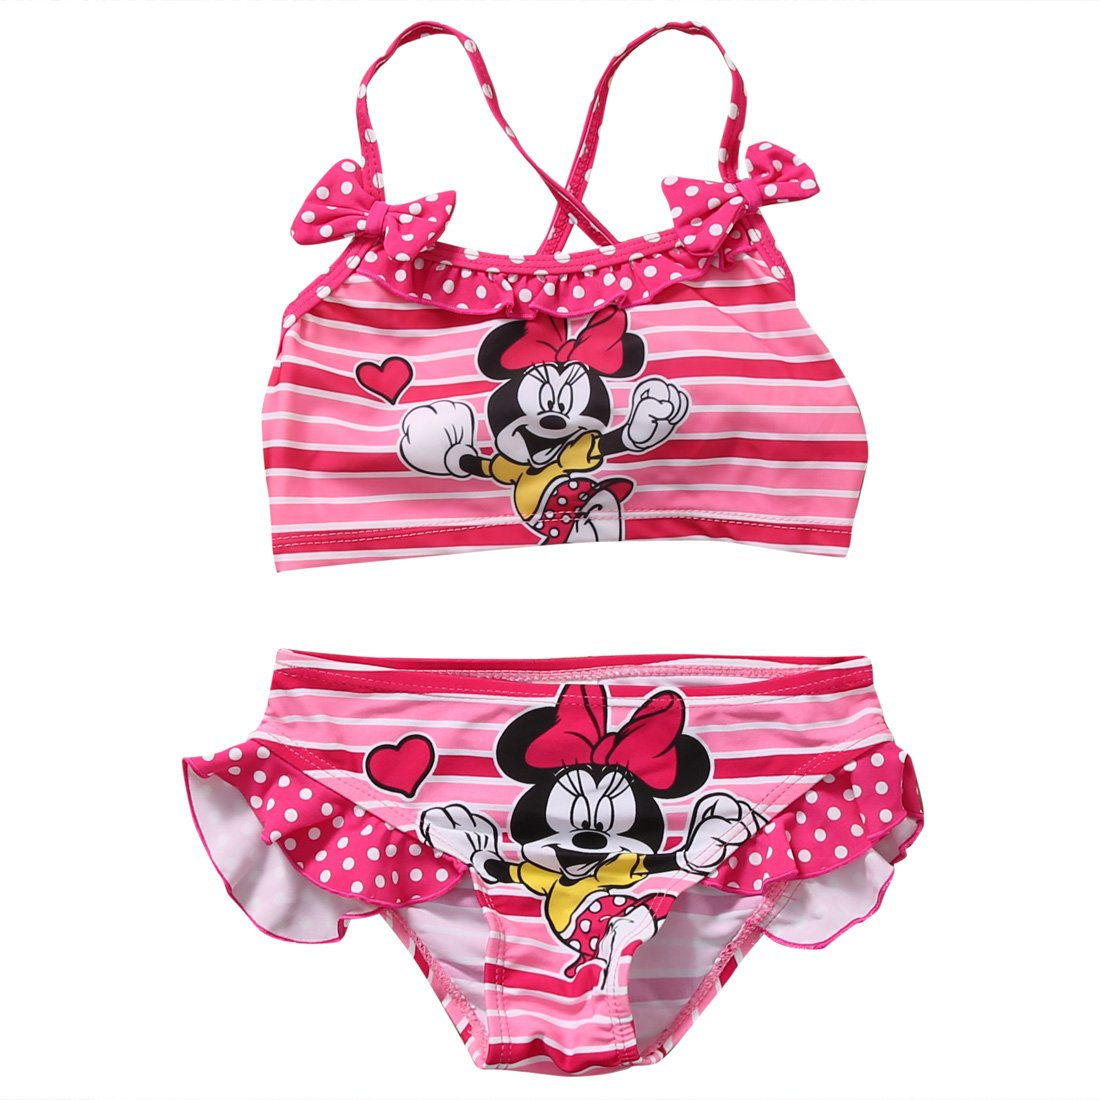 2017 New Minnie Mouse Kids Girl Swimwear Bikini Set Cute Bowknot Beachwear Character Bathing Suit Swimsuit 2-7Years-cigauy